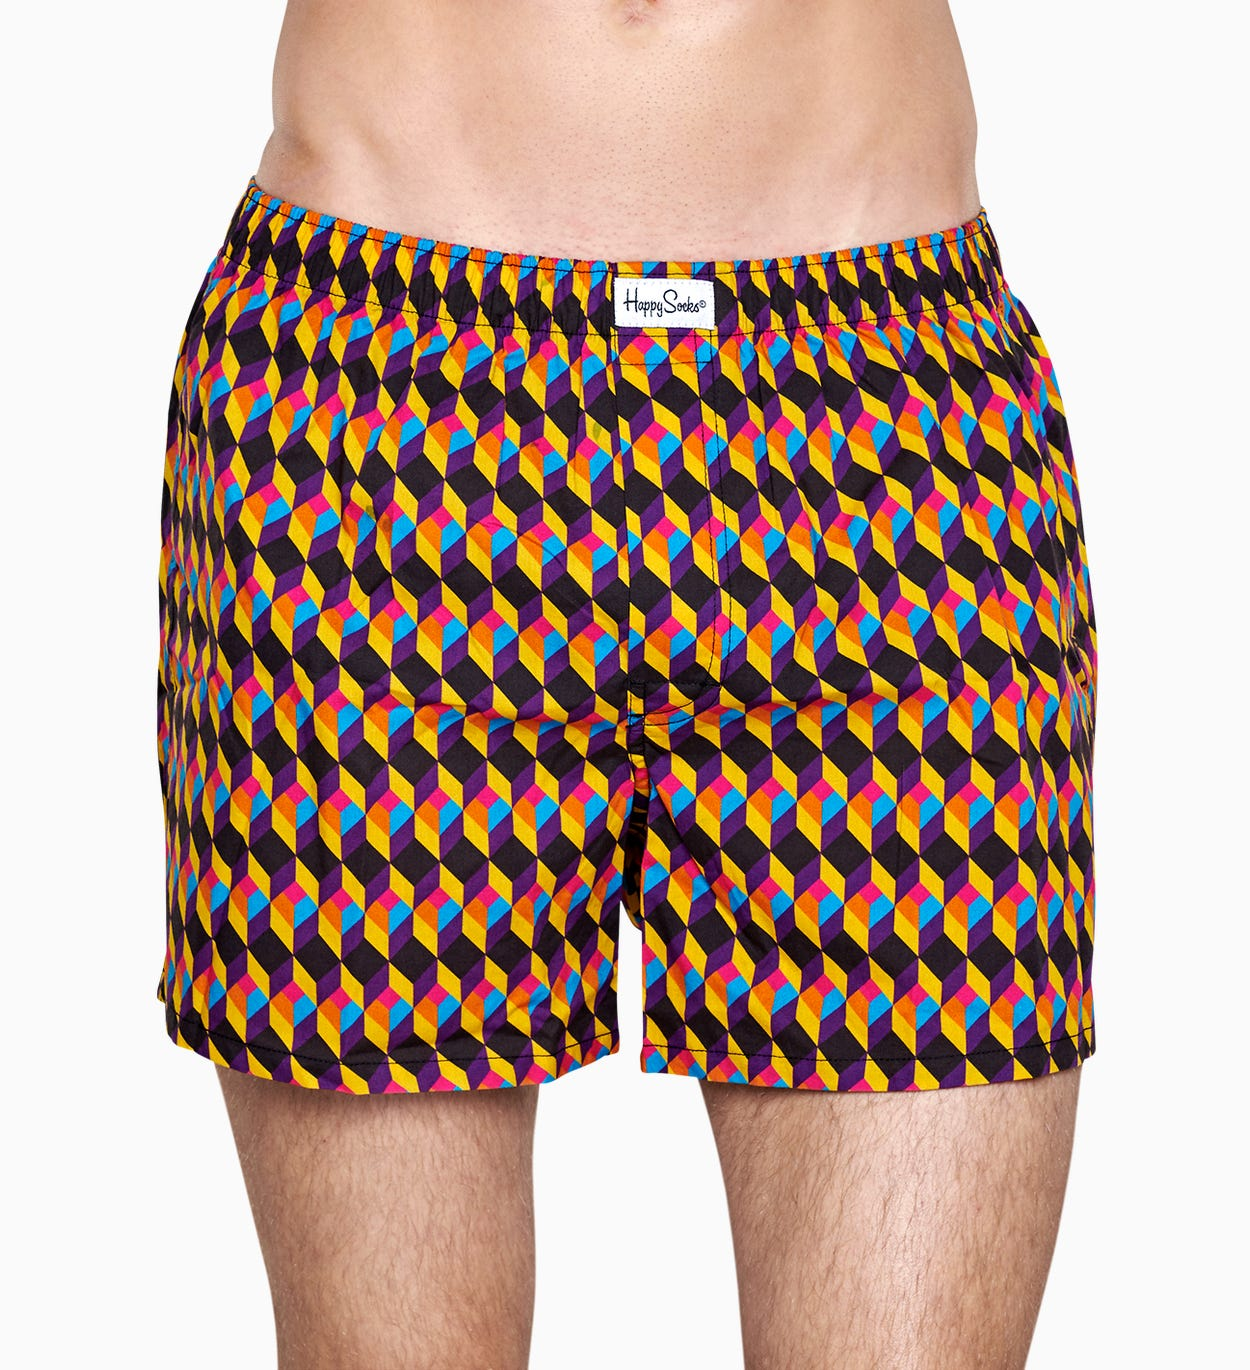 Heren ondergoed: Optic Square Boxer, Zwart | Happy Socks